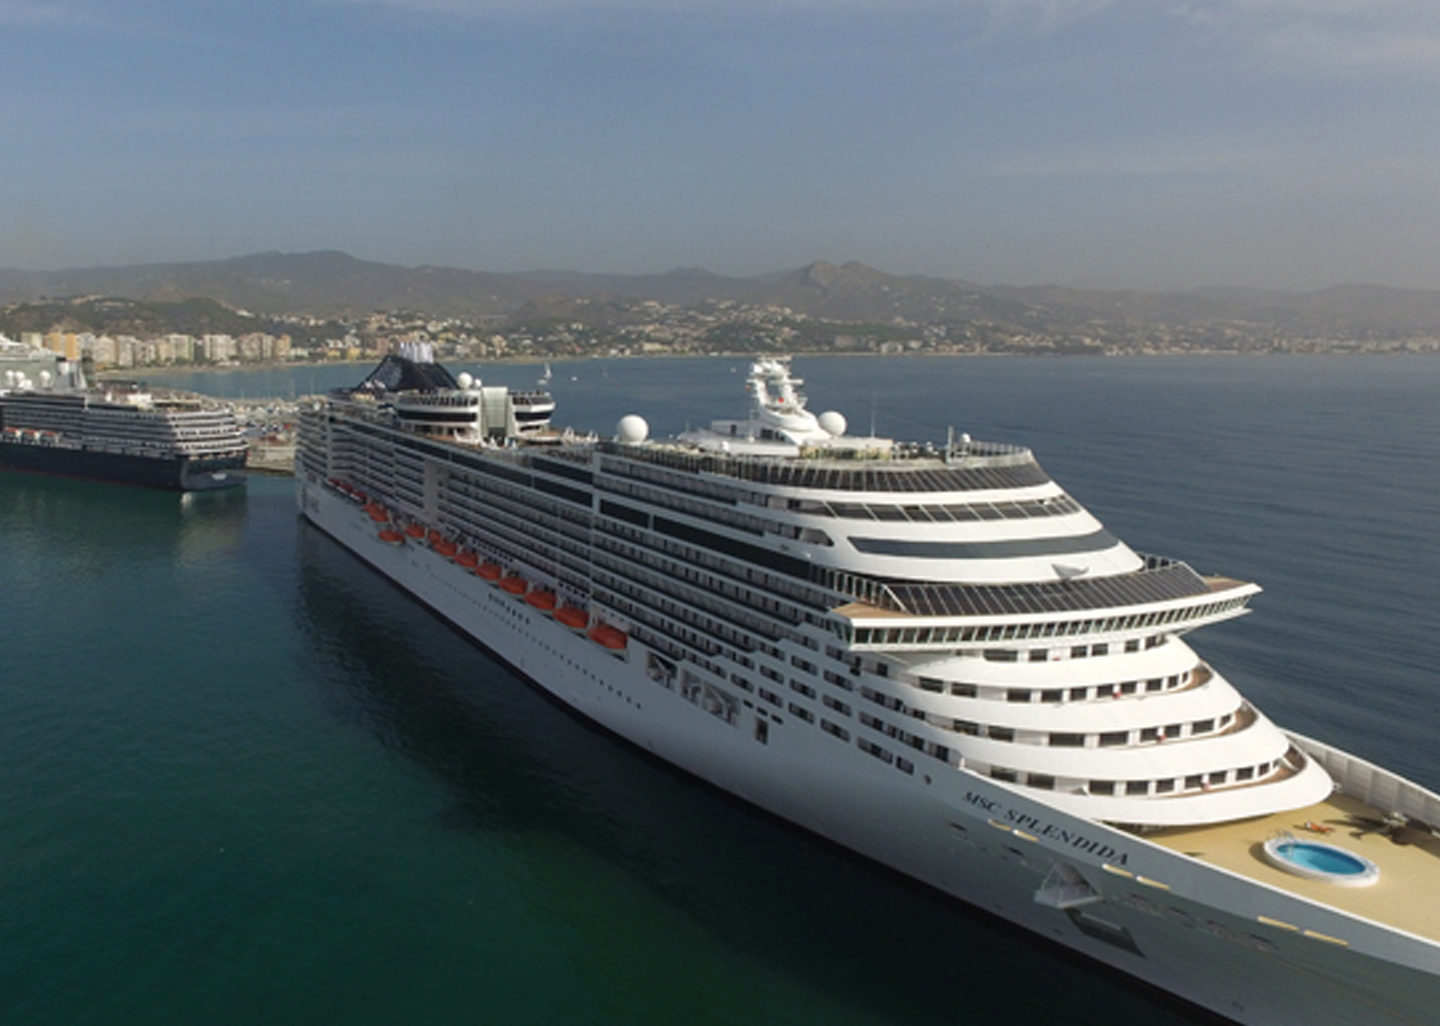 Malaga capital will be homeporting MSC Cruises in 2020